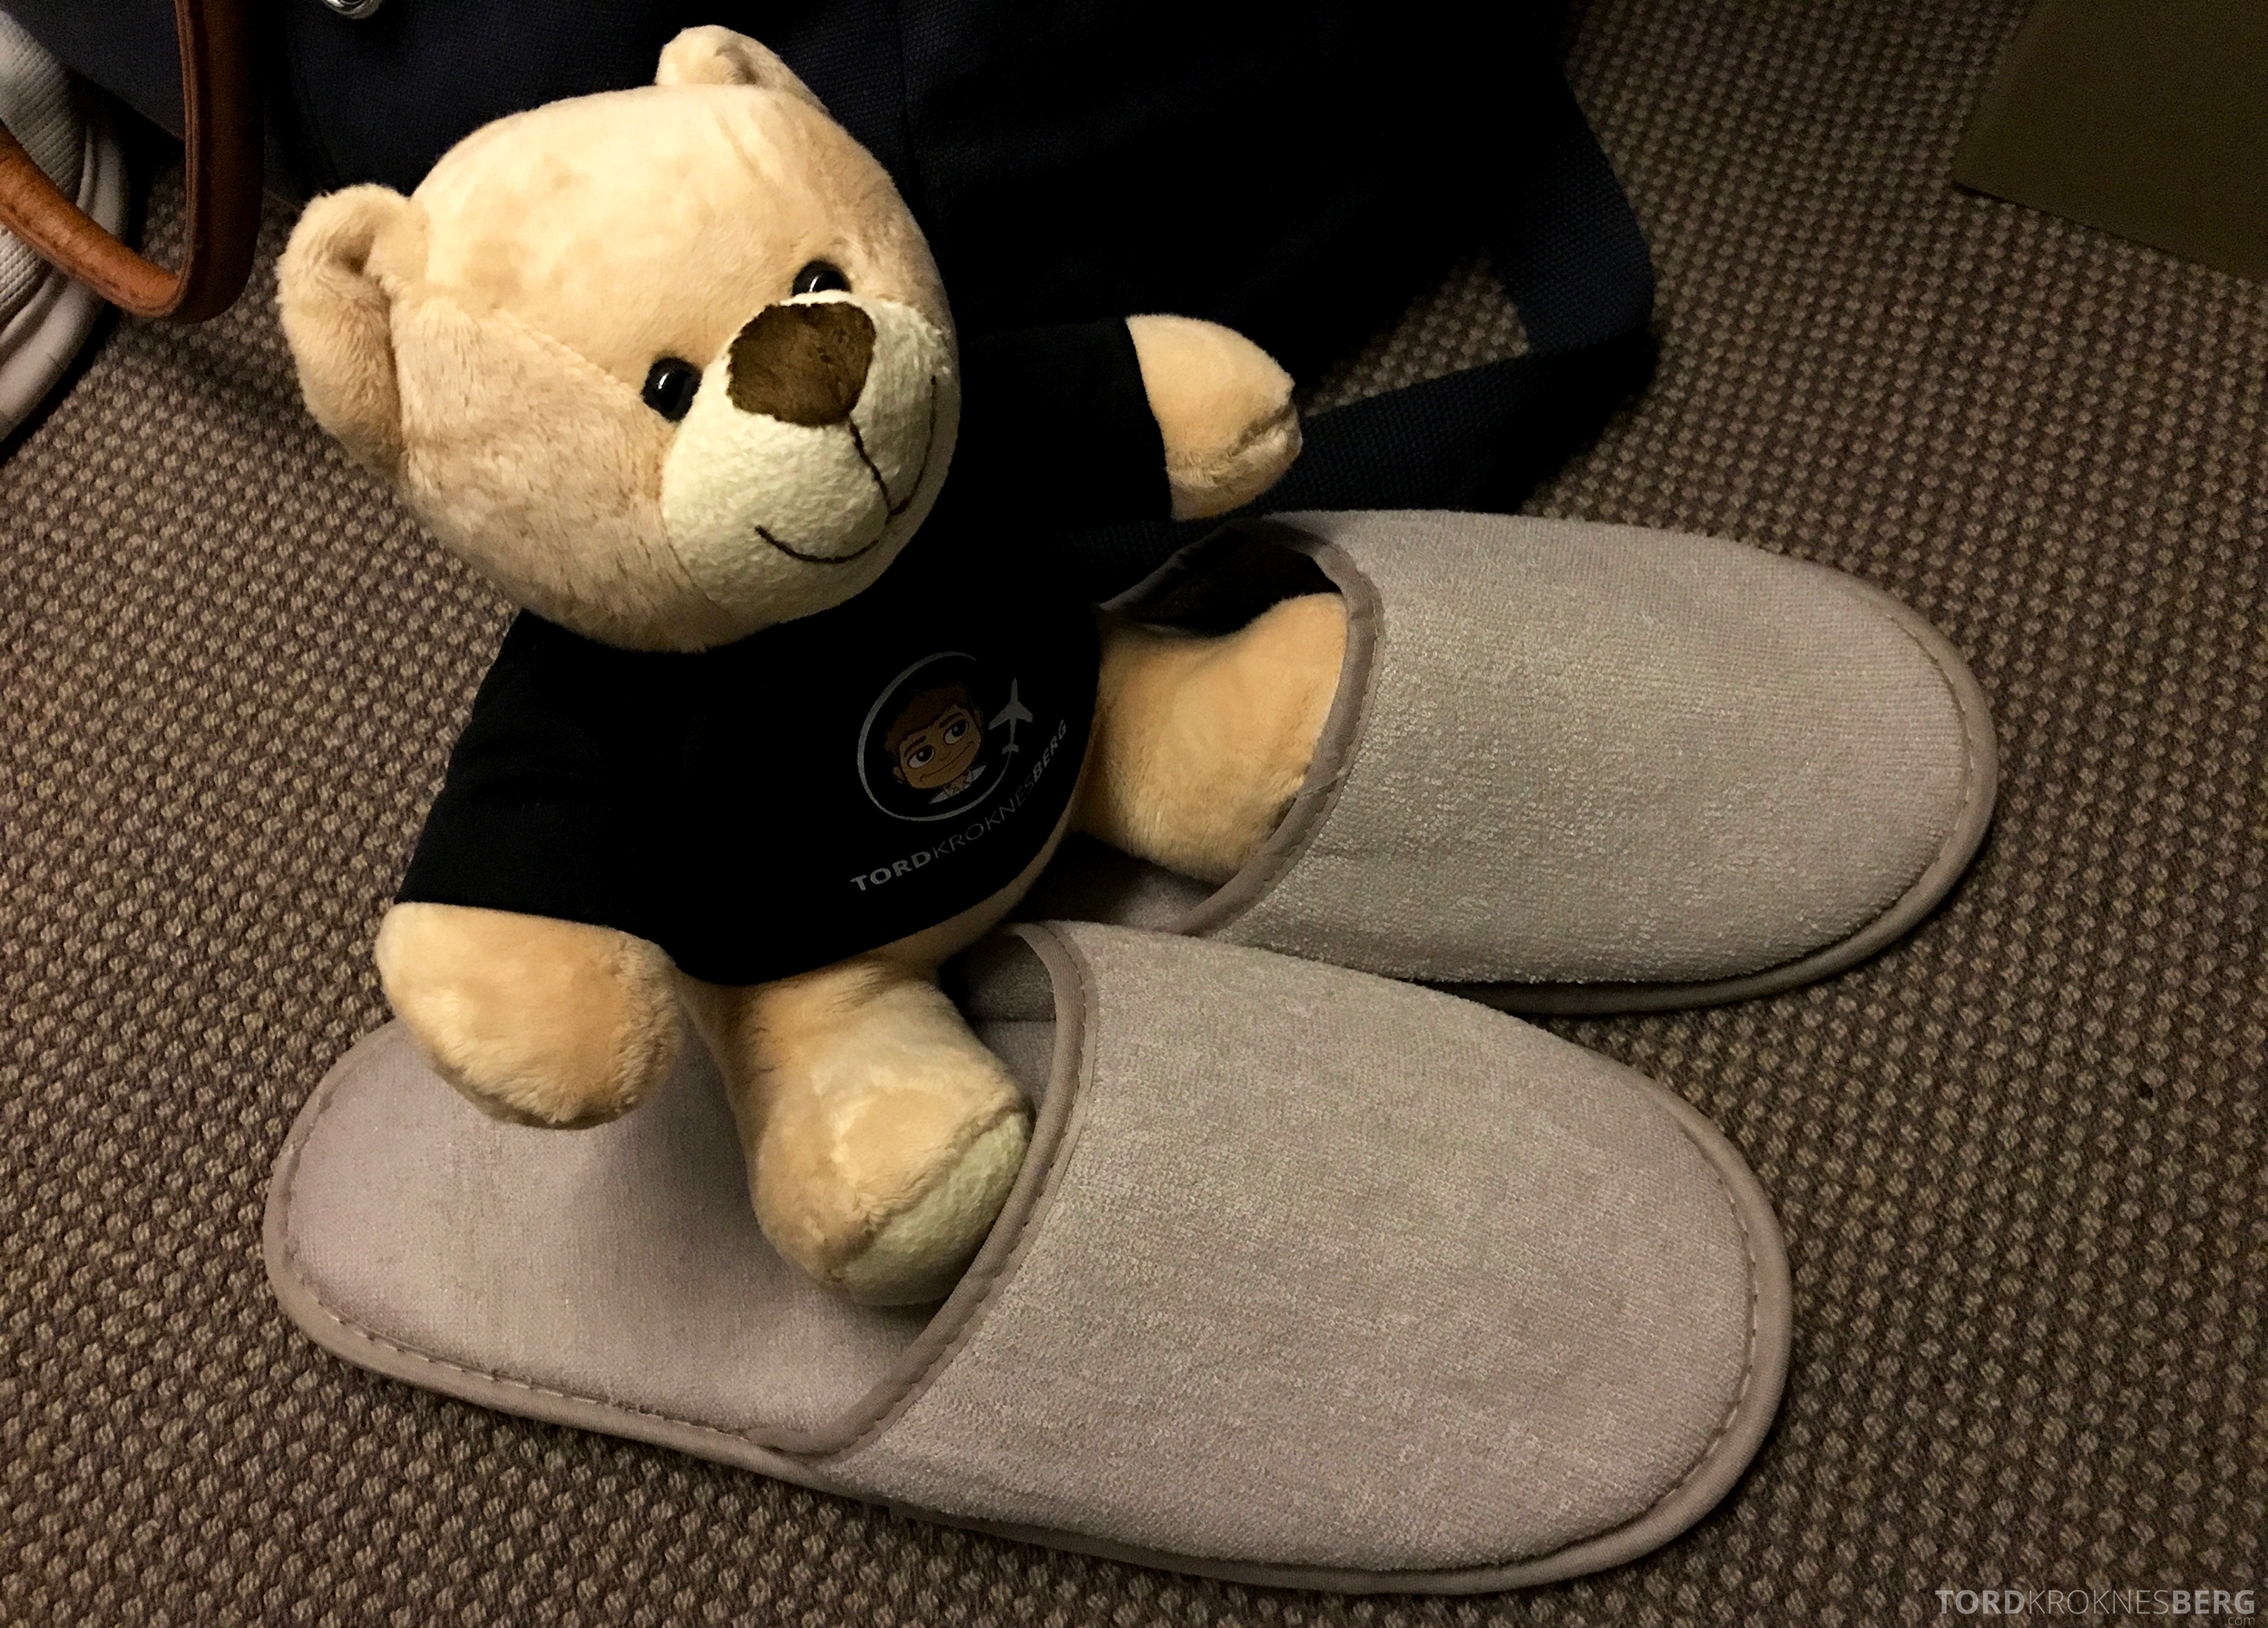 Singapore Airlines Business Class Canberra reisefølget slippers